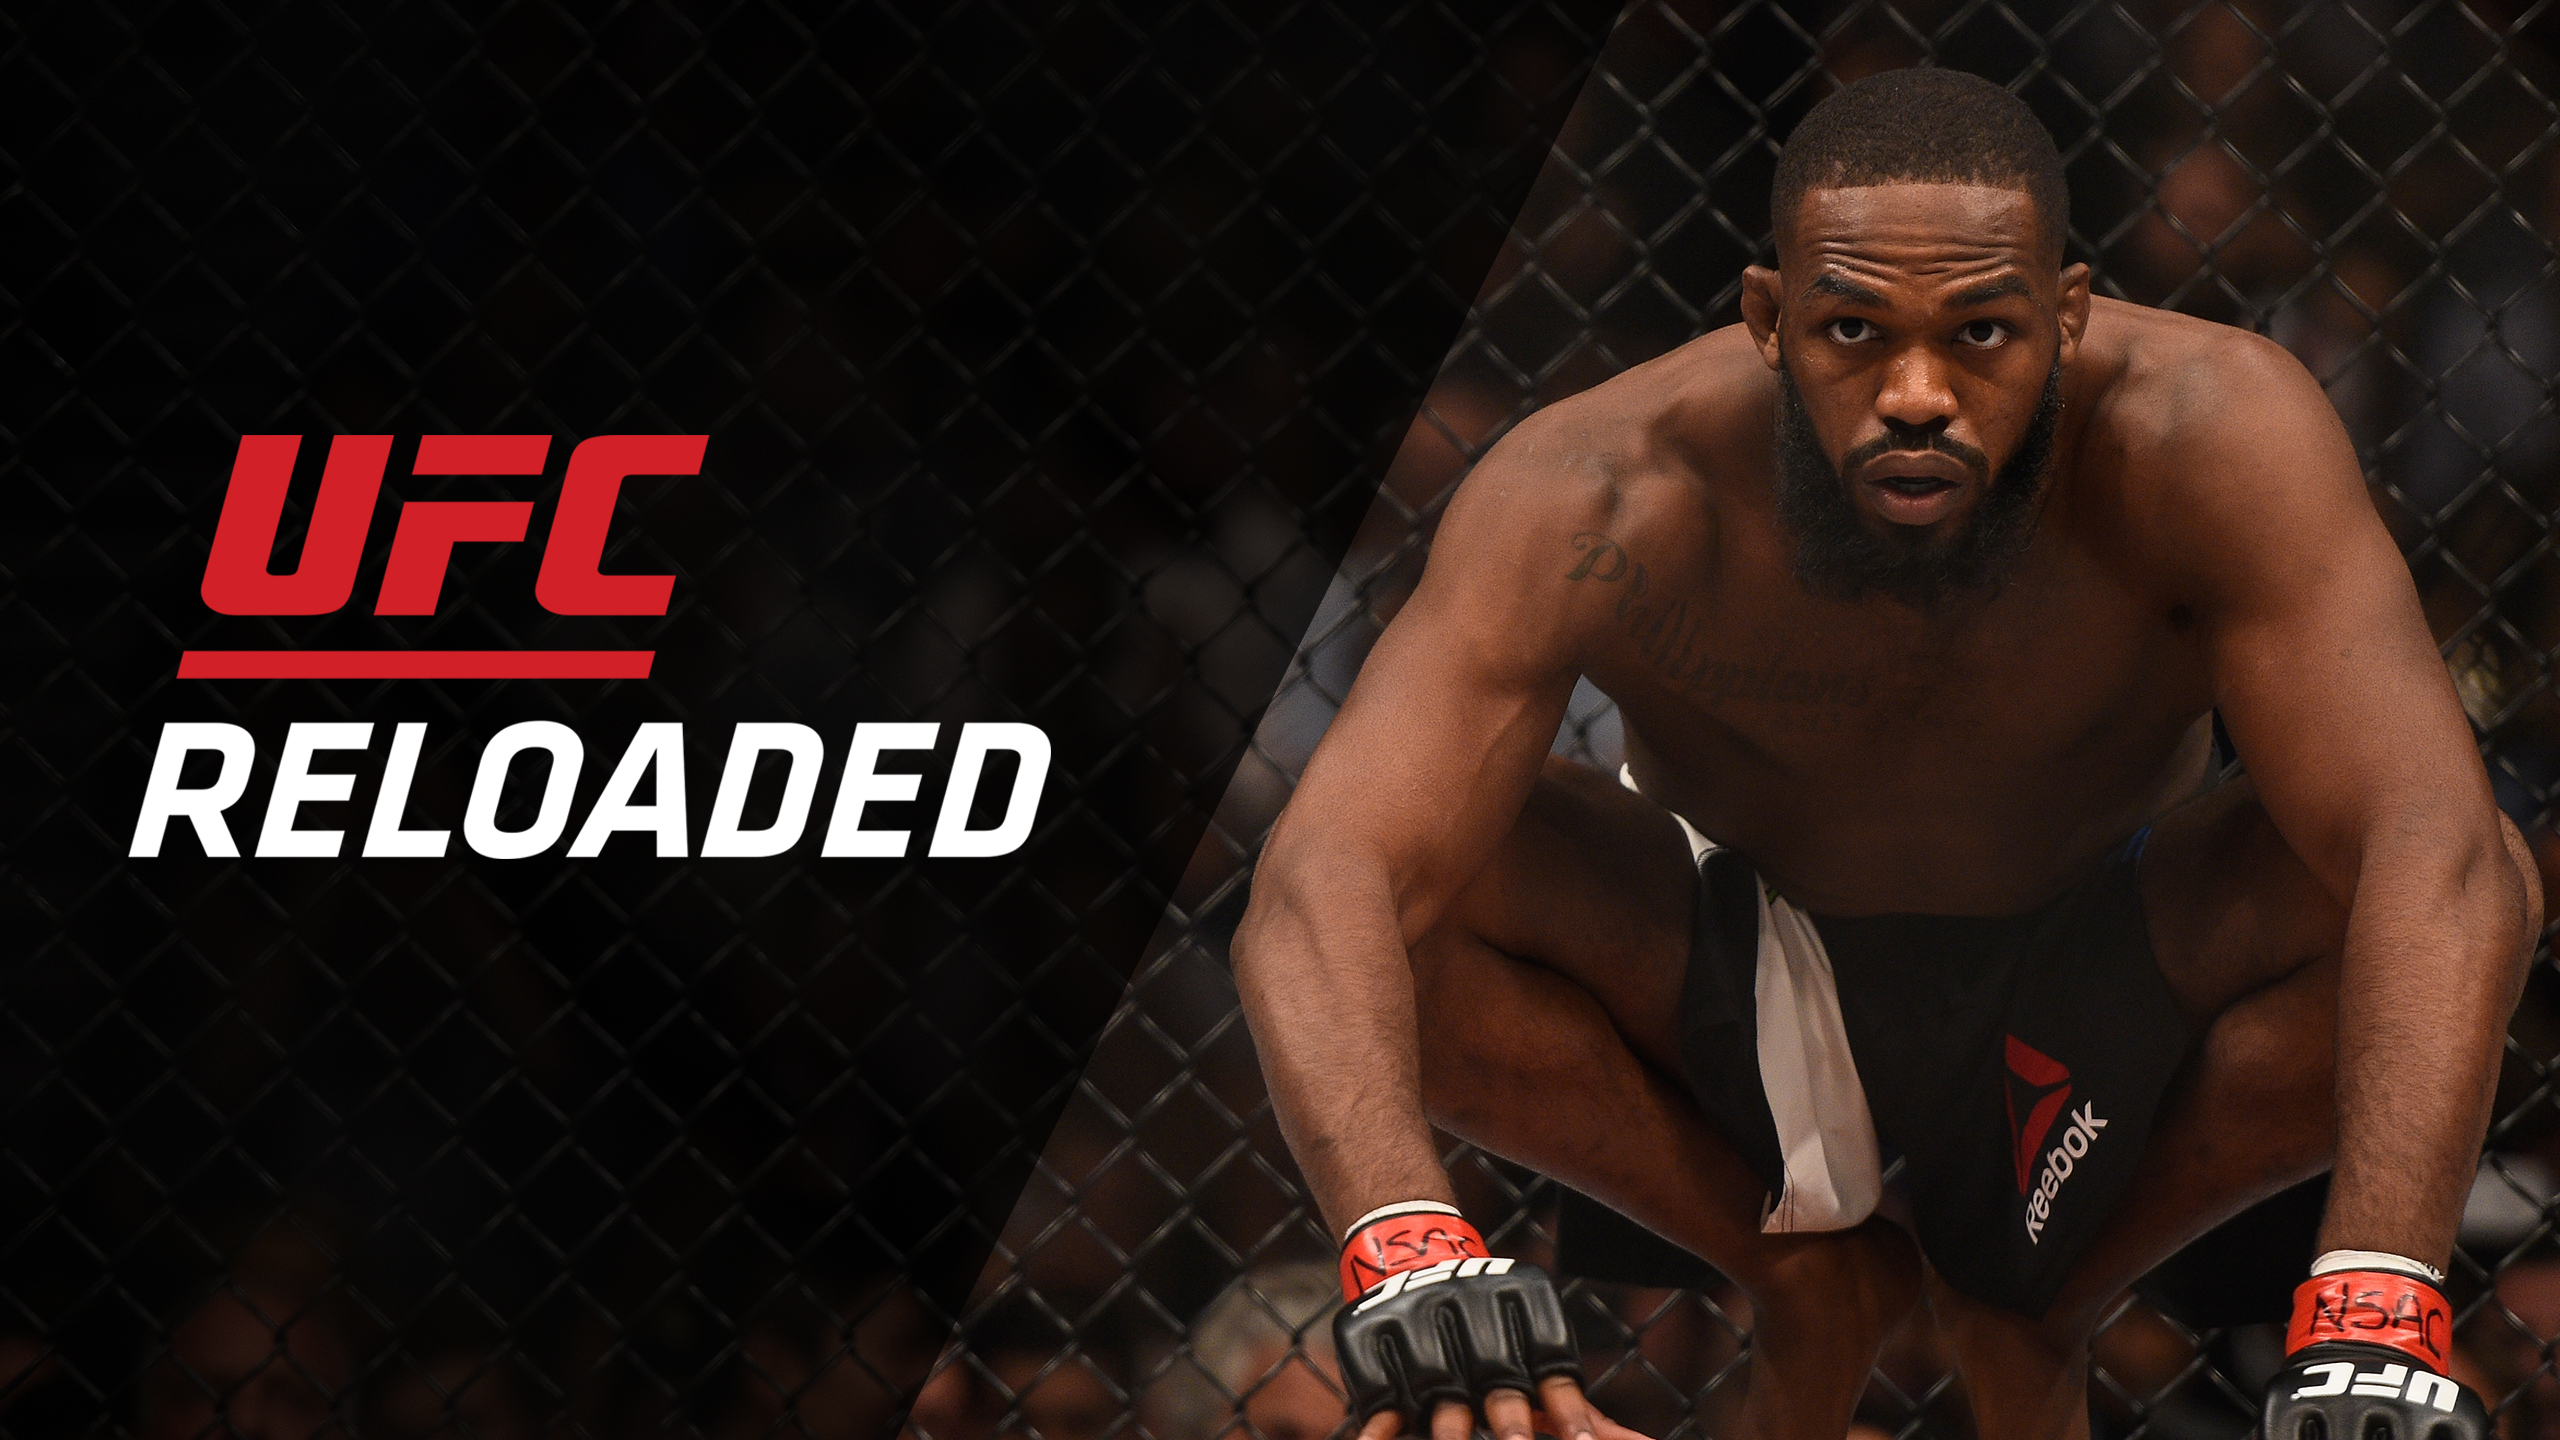 UFC Reloaded: 197: Jones vs. Saint Preux